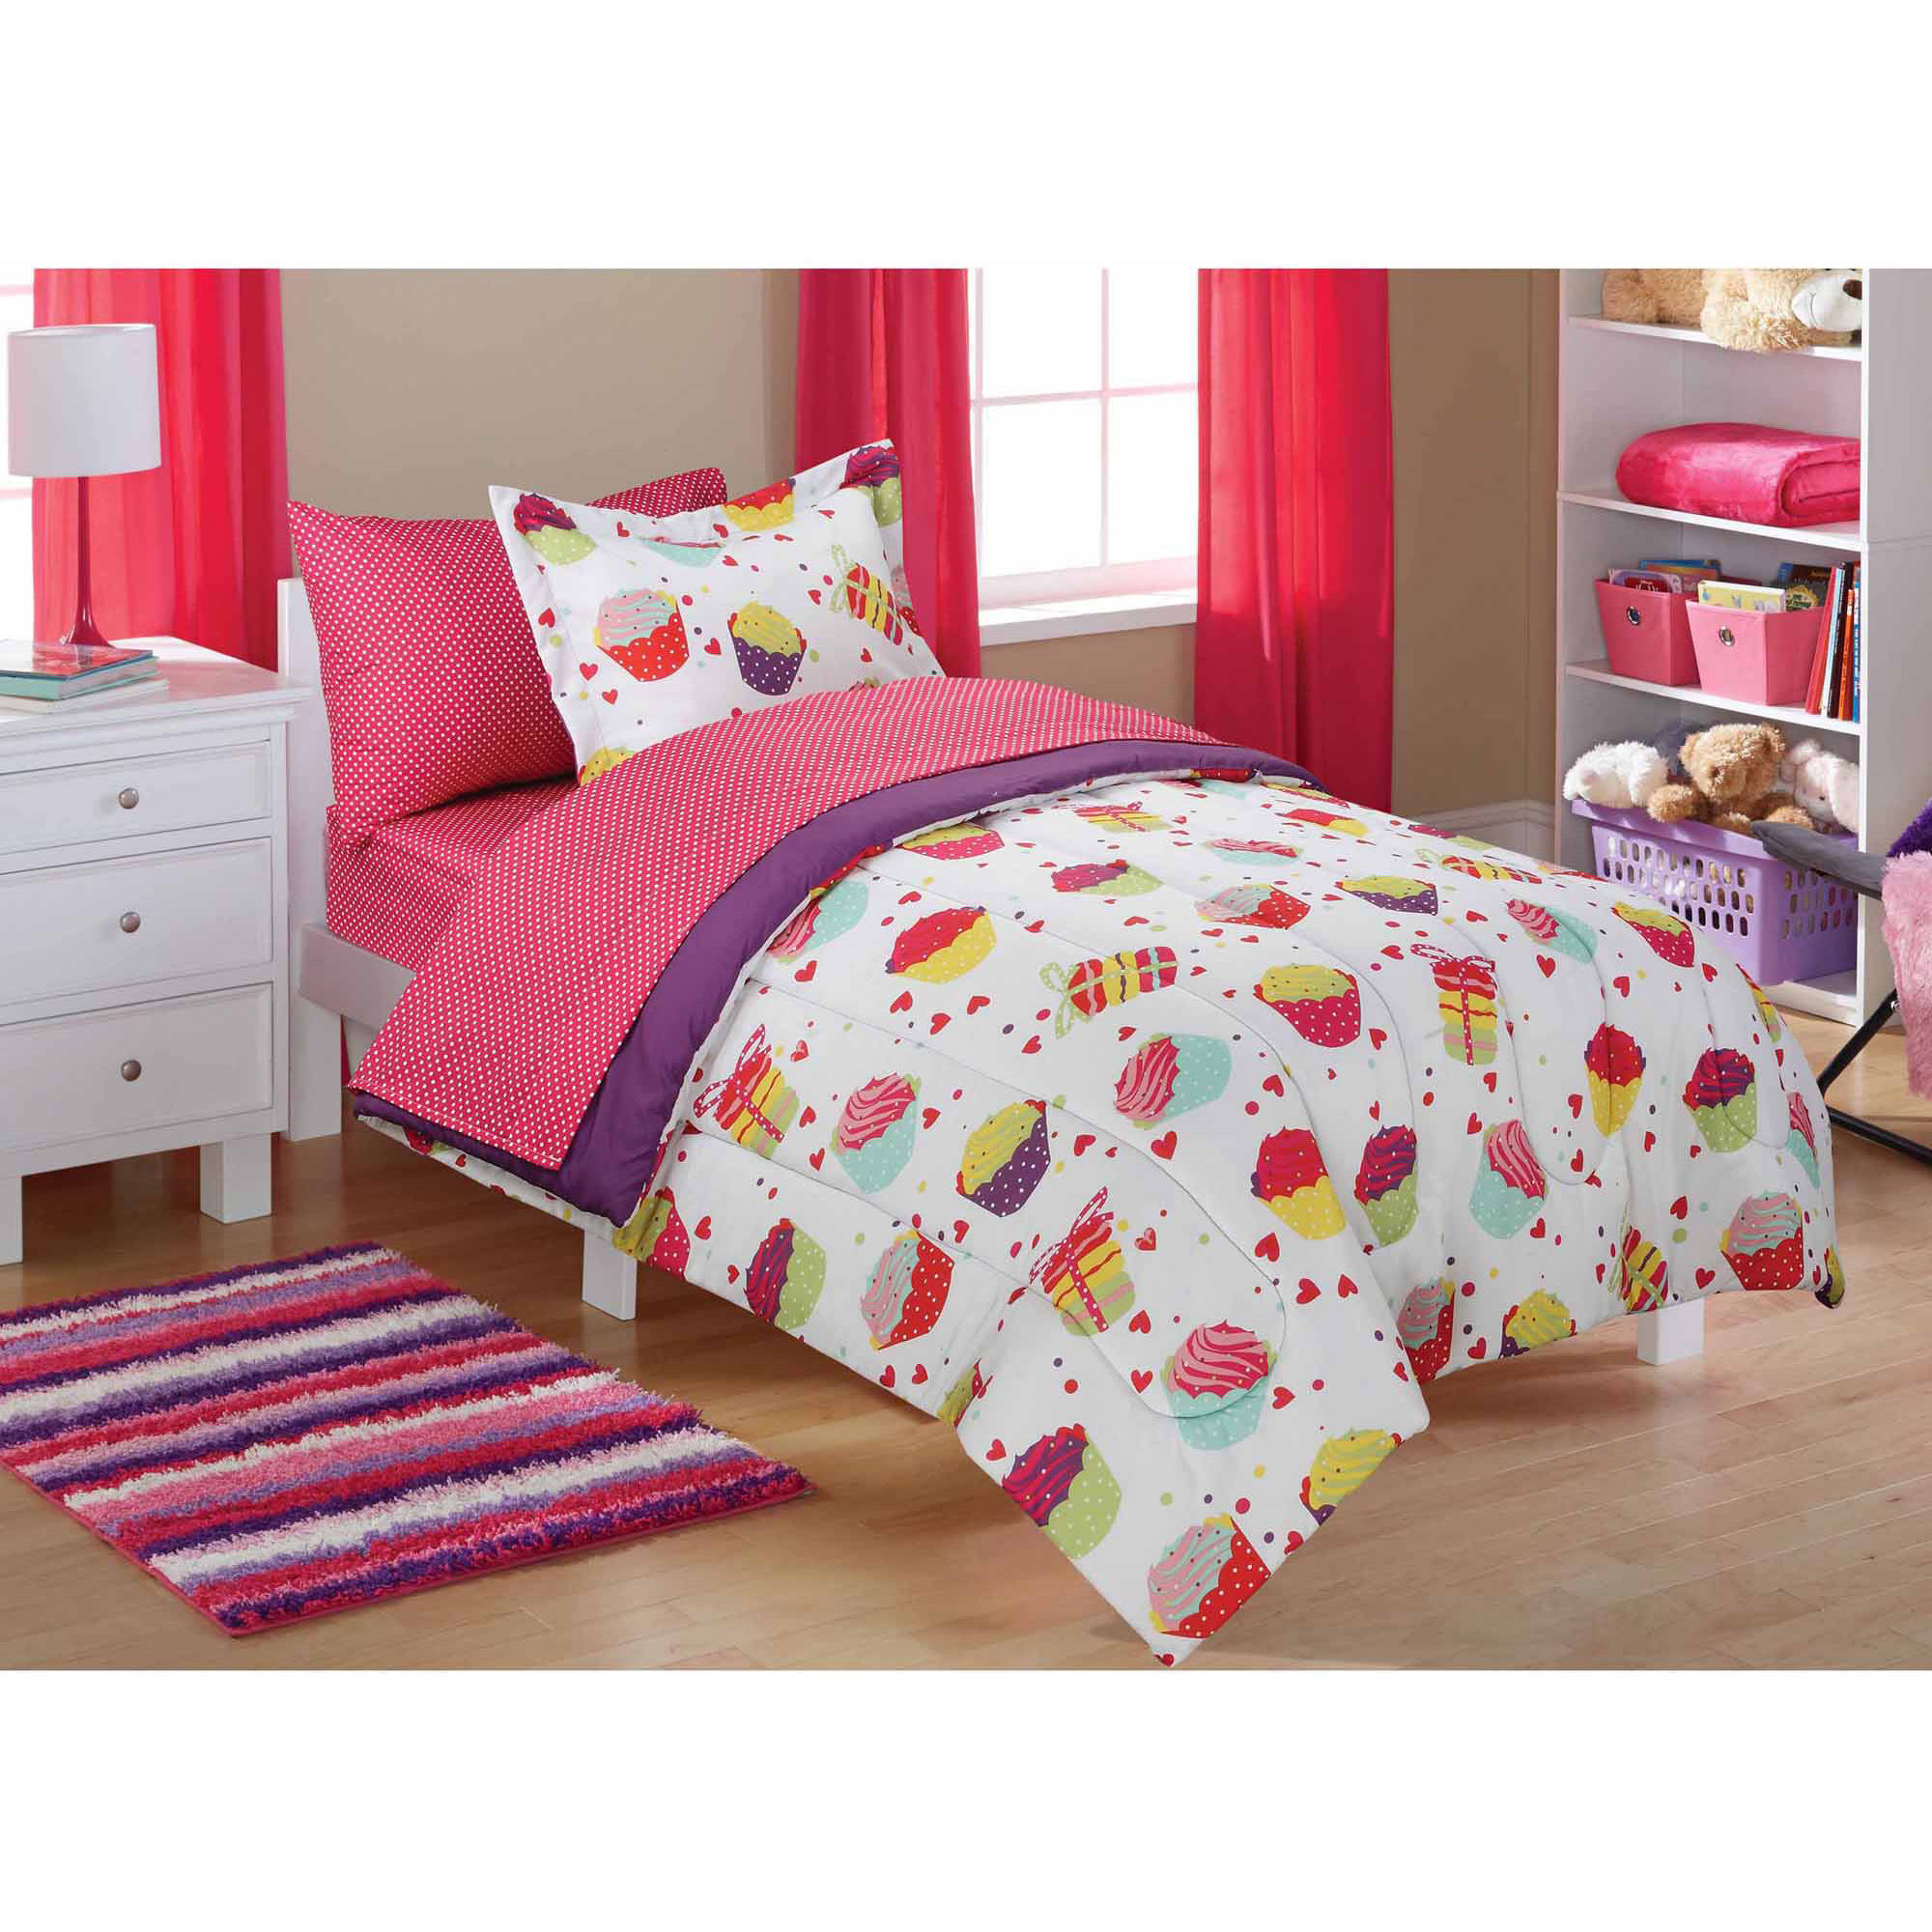 Perfect Mainstays Kids Cupcake Coordinated Bed In A Bag   Walmart.com